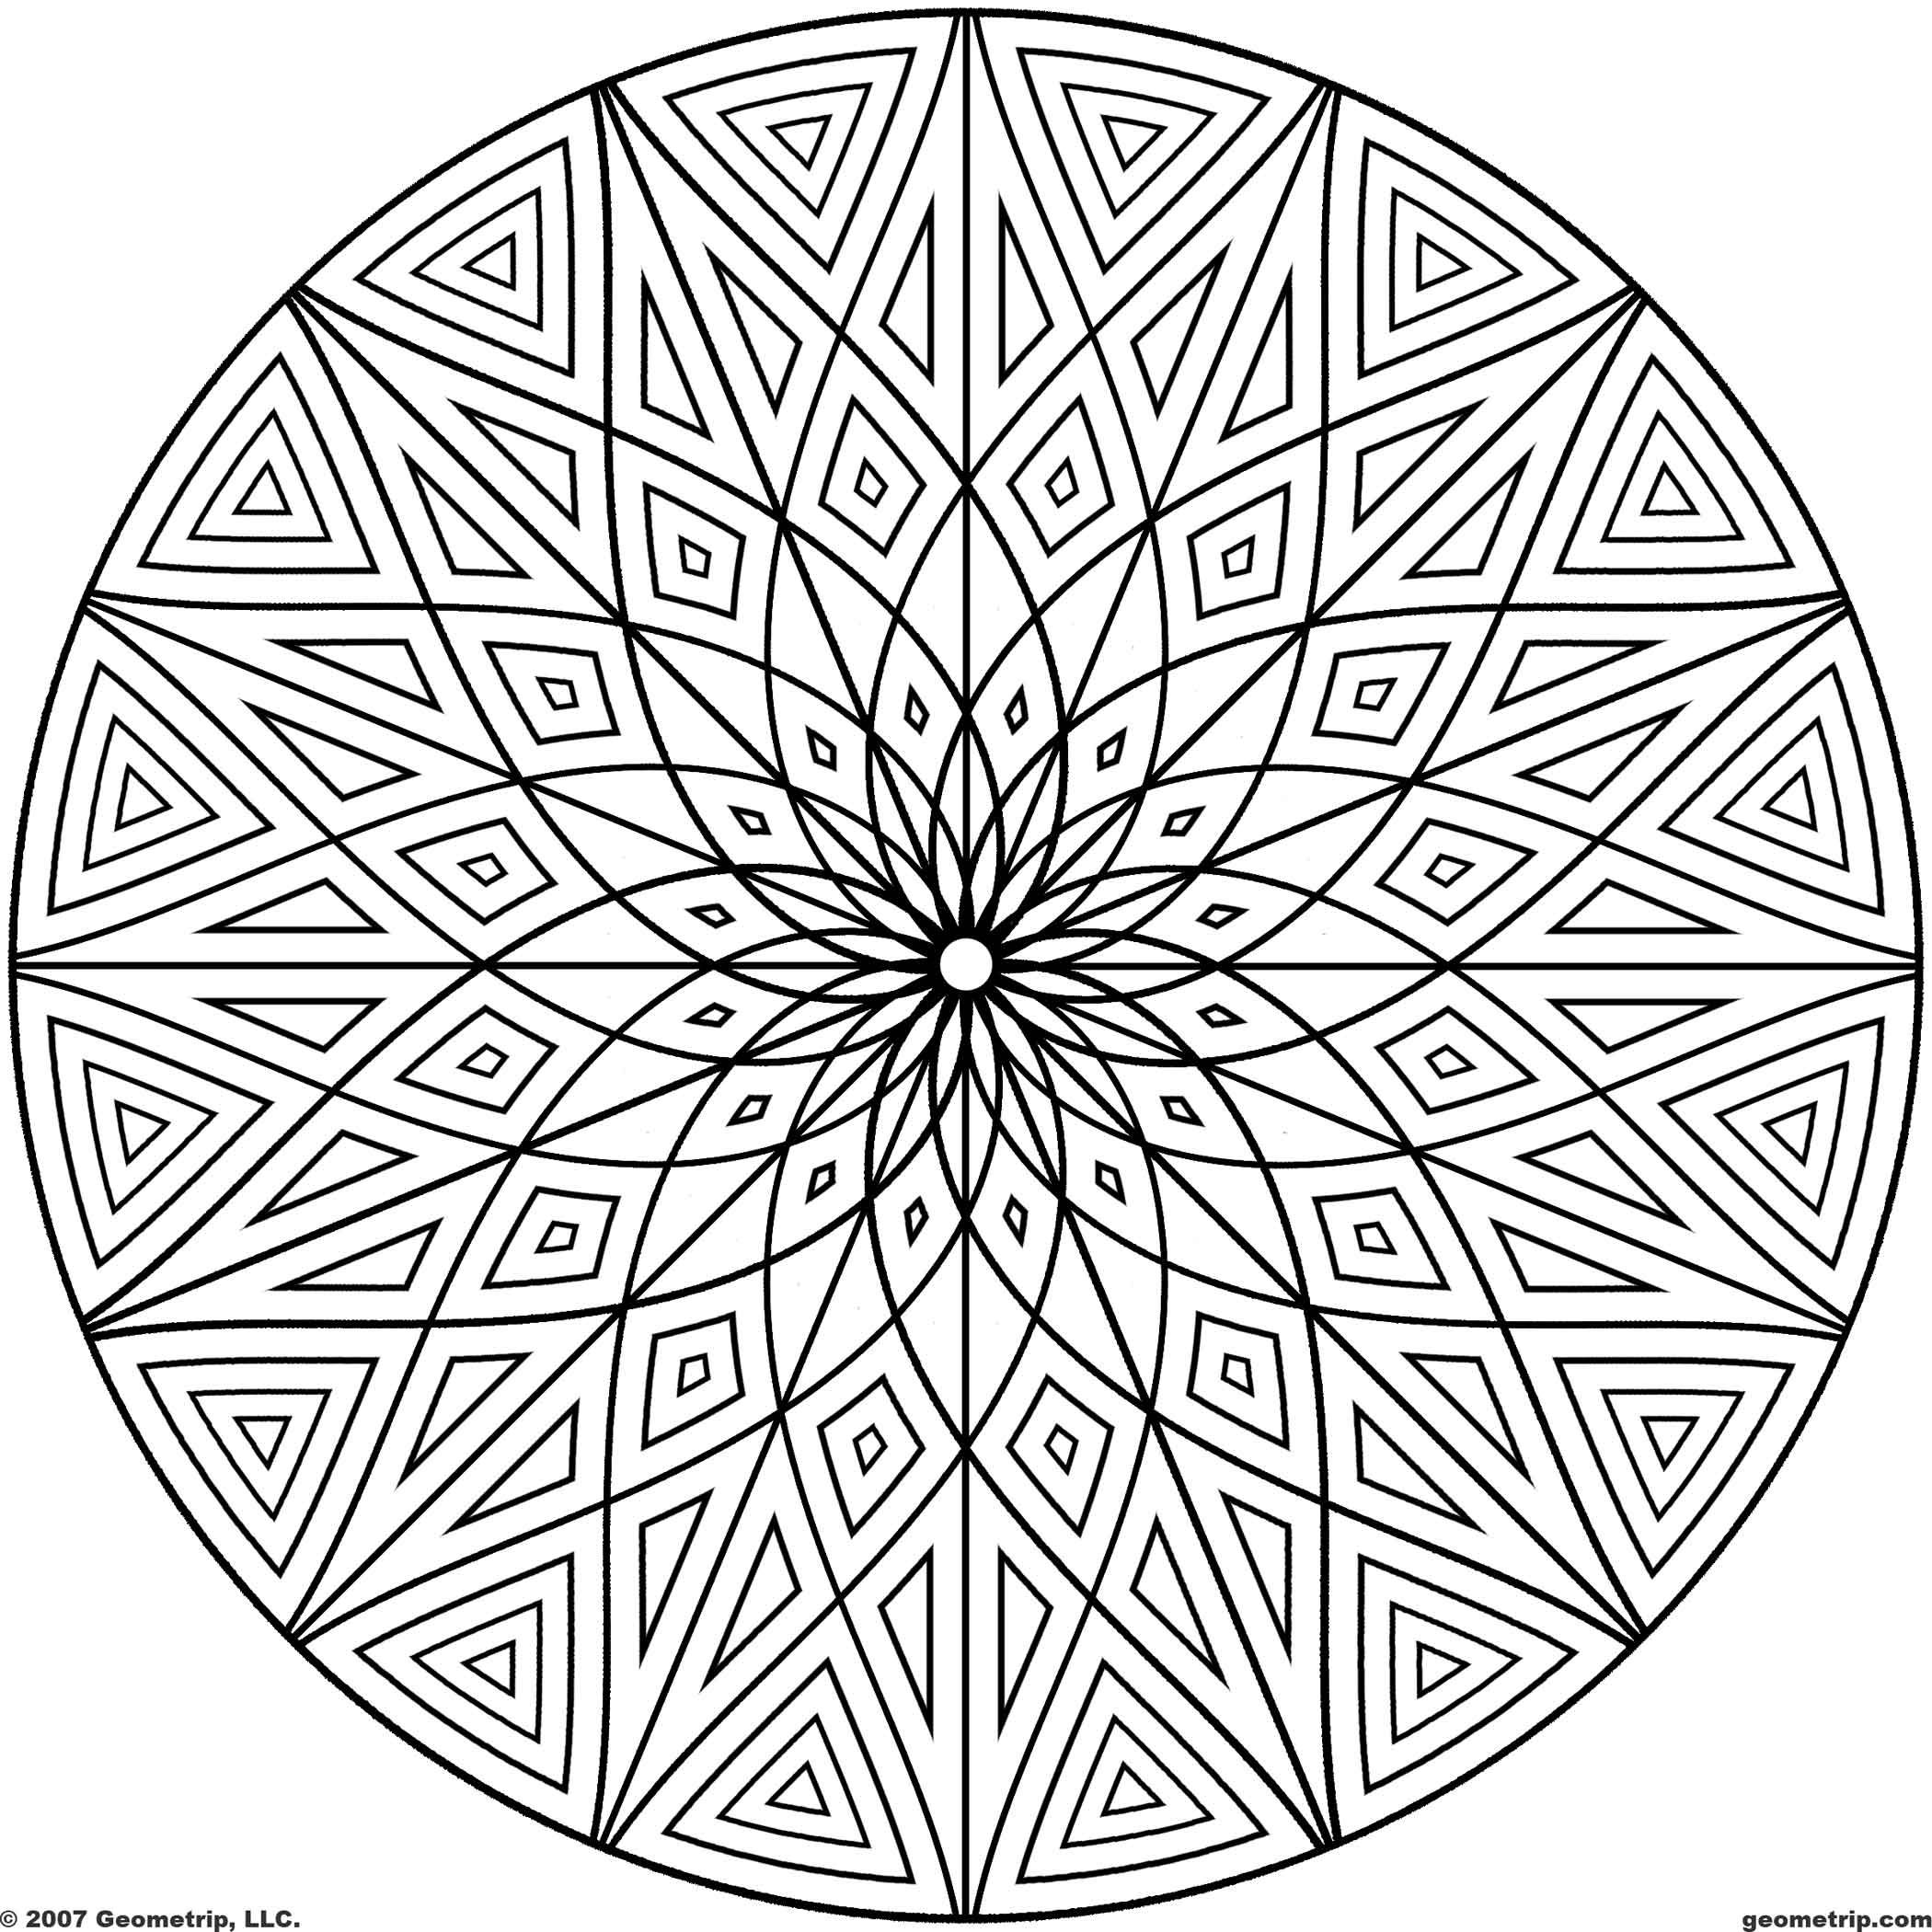 cool patterns to color printable geometric patterns geometripcom free patterns to color cool